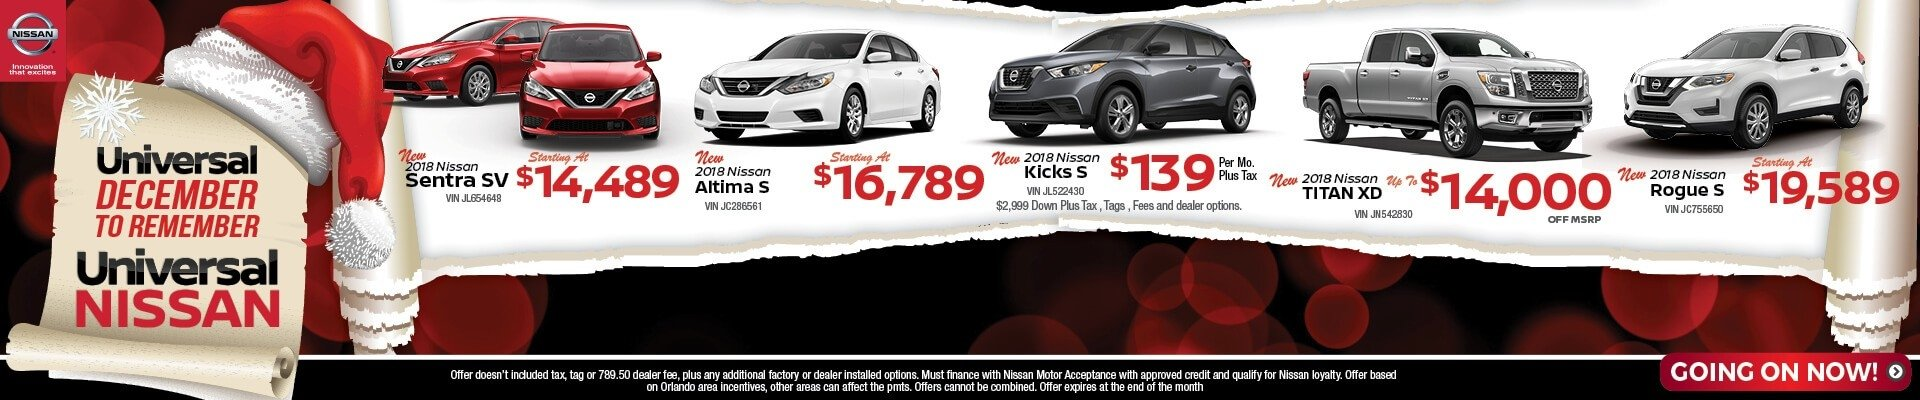 Universal Nissan Special Offers